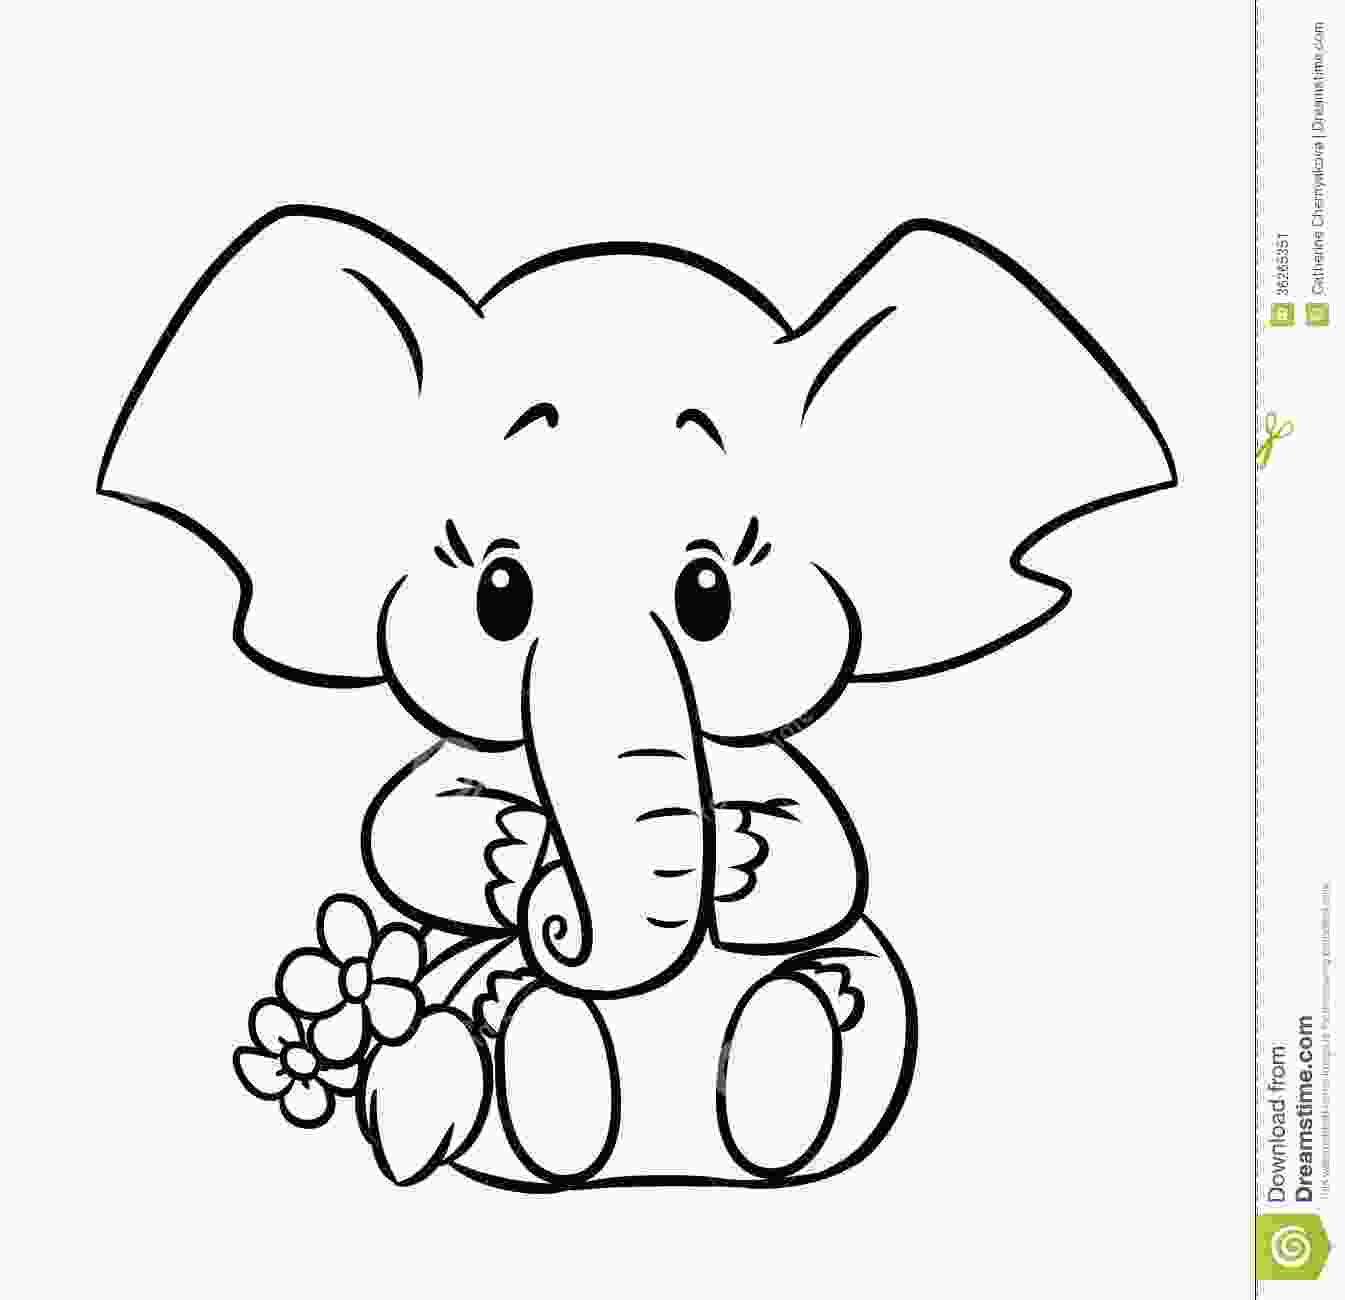 baby elephant coloring page baby elephant coloring pages to download and print for free 1